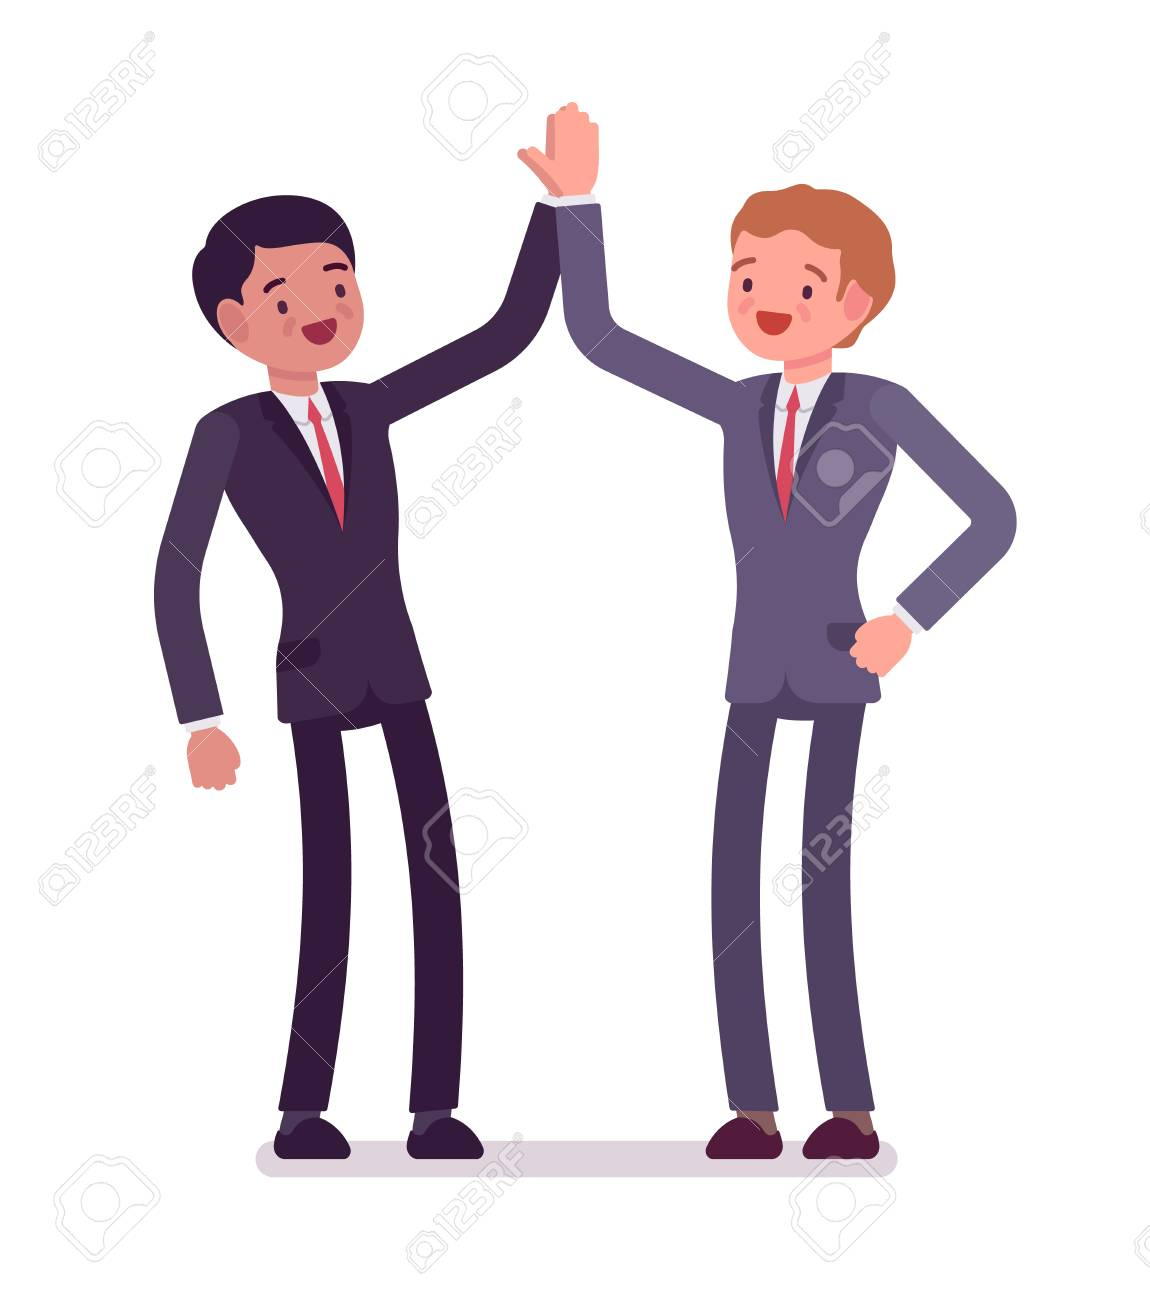 Business partners giving high five men hearty greeting each business partners giving high five men hearty greeting each other celebrate victory mutual m4hsunfo